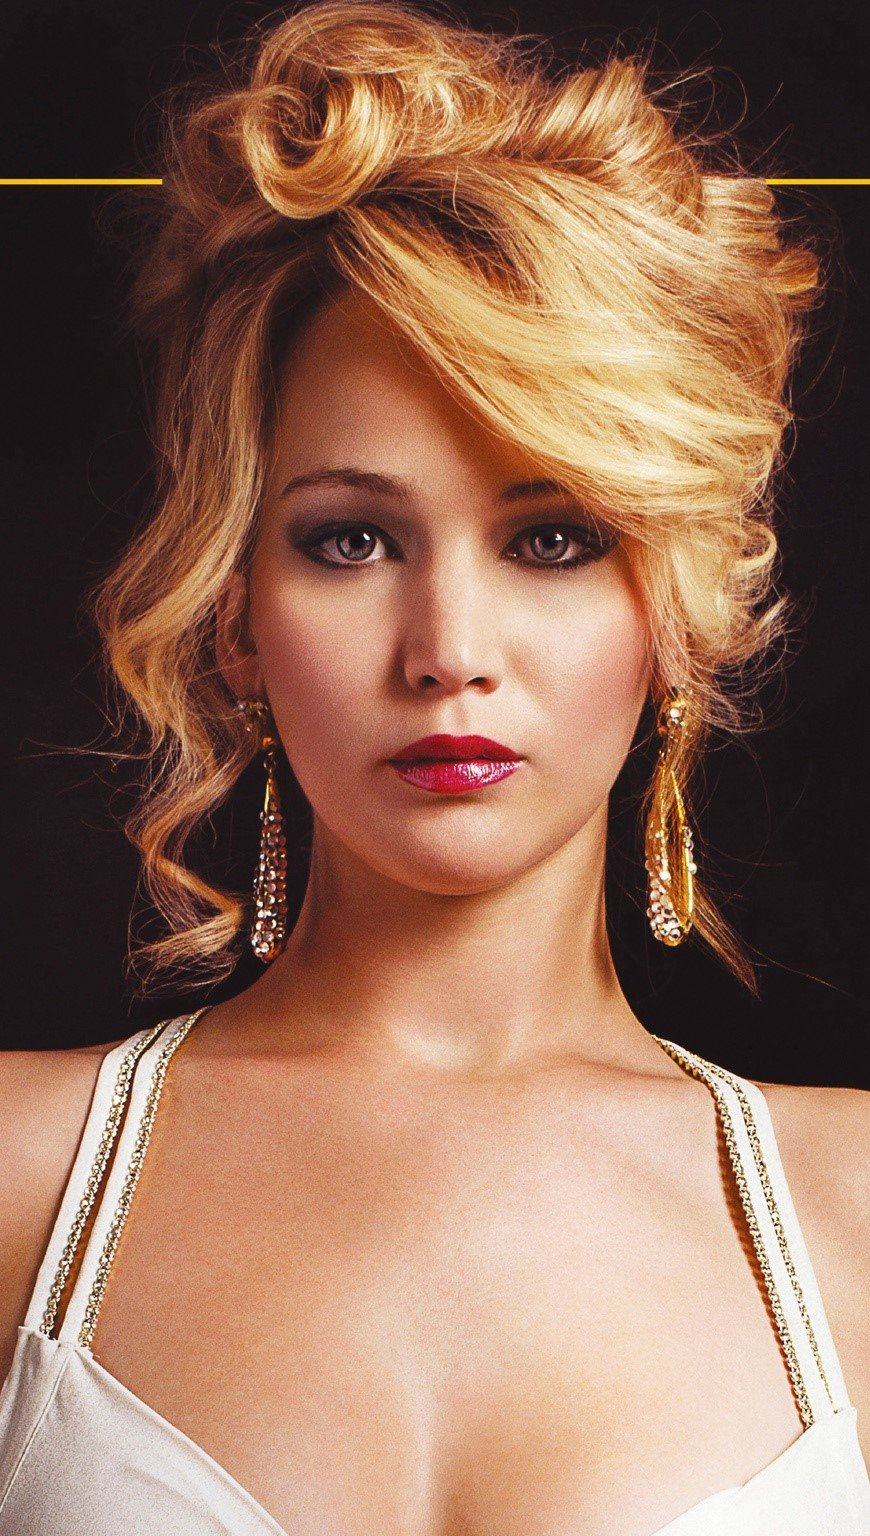 Wallpaper Jennifer Lawrence in American Scandal Vertical